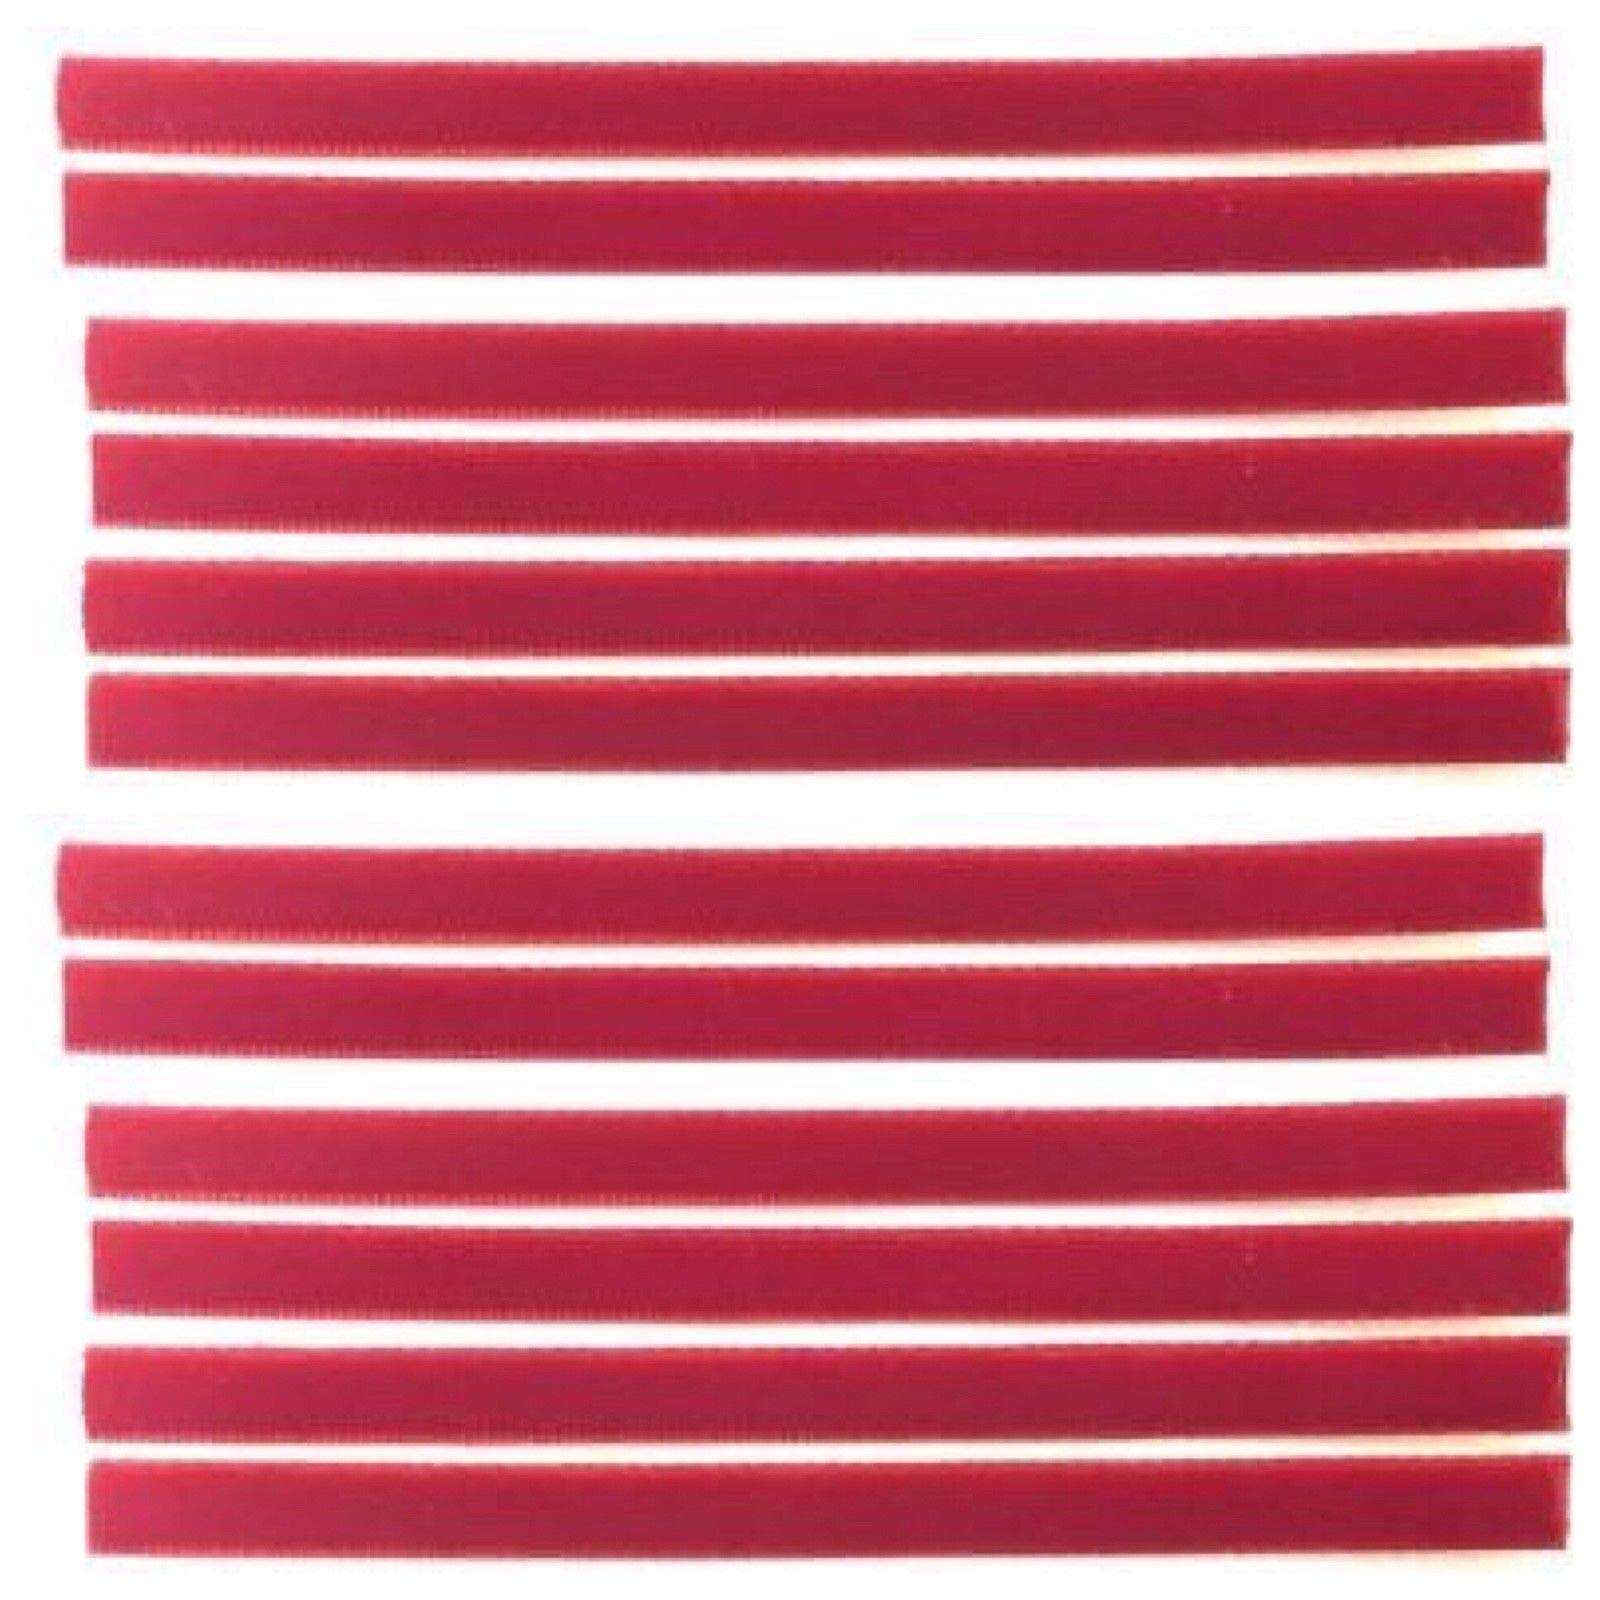 Replacement VPI Strips (Qty. 12) Luxury Velvet/Felt 3M Adhesive Okki Nokki Vinyl Record - Red by Capitol Collectibles